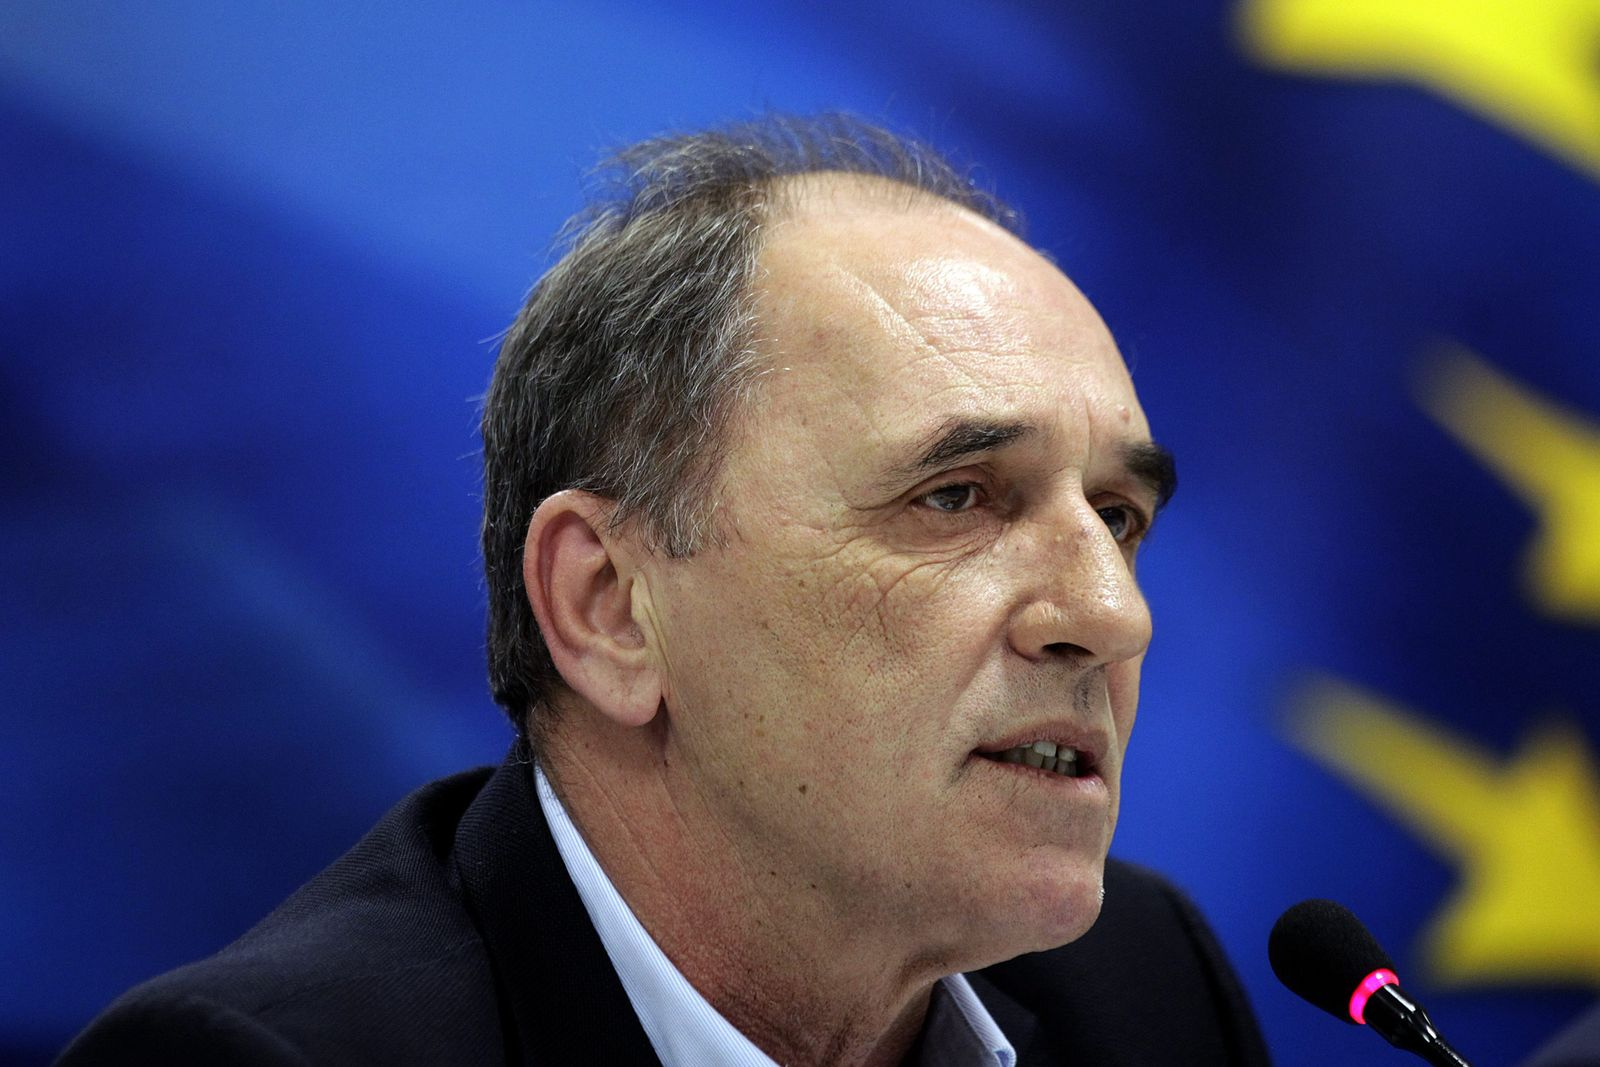 Investment in Griechenland/ Giorgios Stathakis